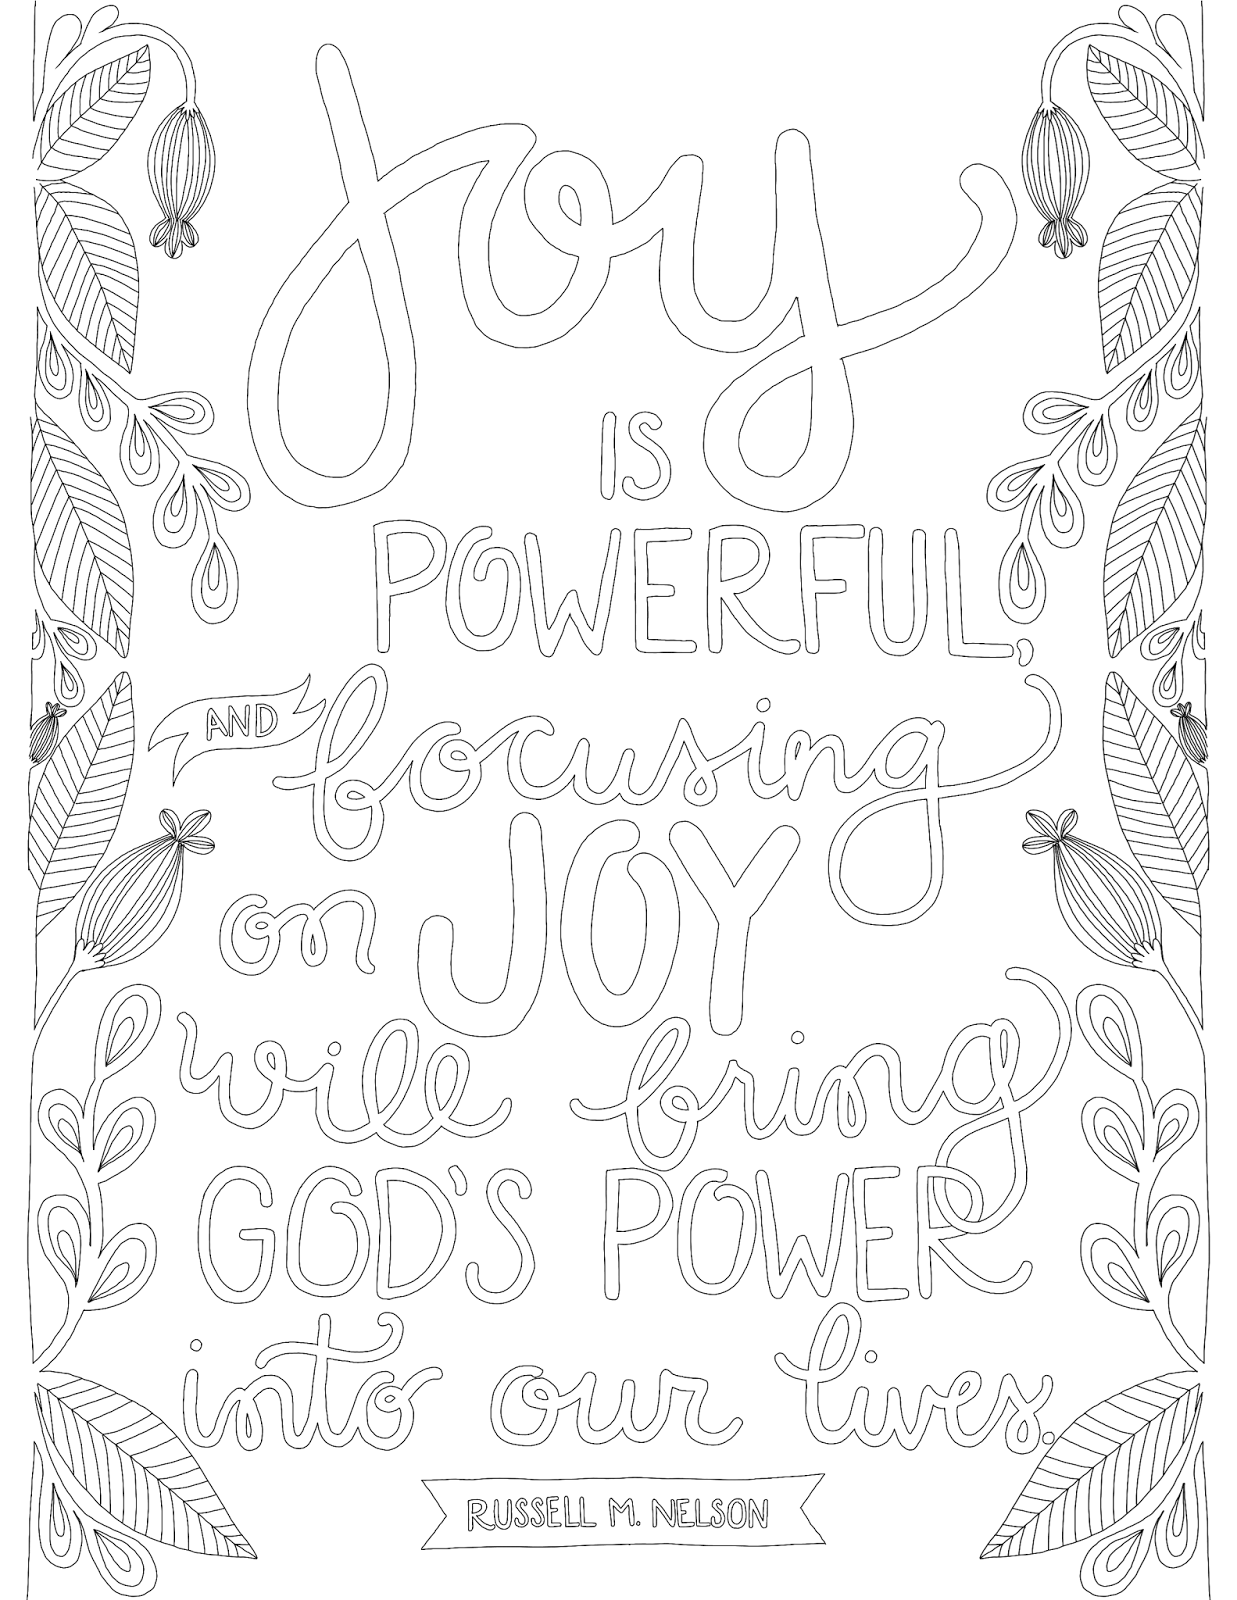 Just What I Squeeze In Fullness Of Joy Coloring Page Quote Coloring Pages Lds Coloring Pages Coloring Pages